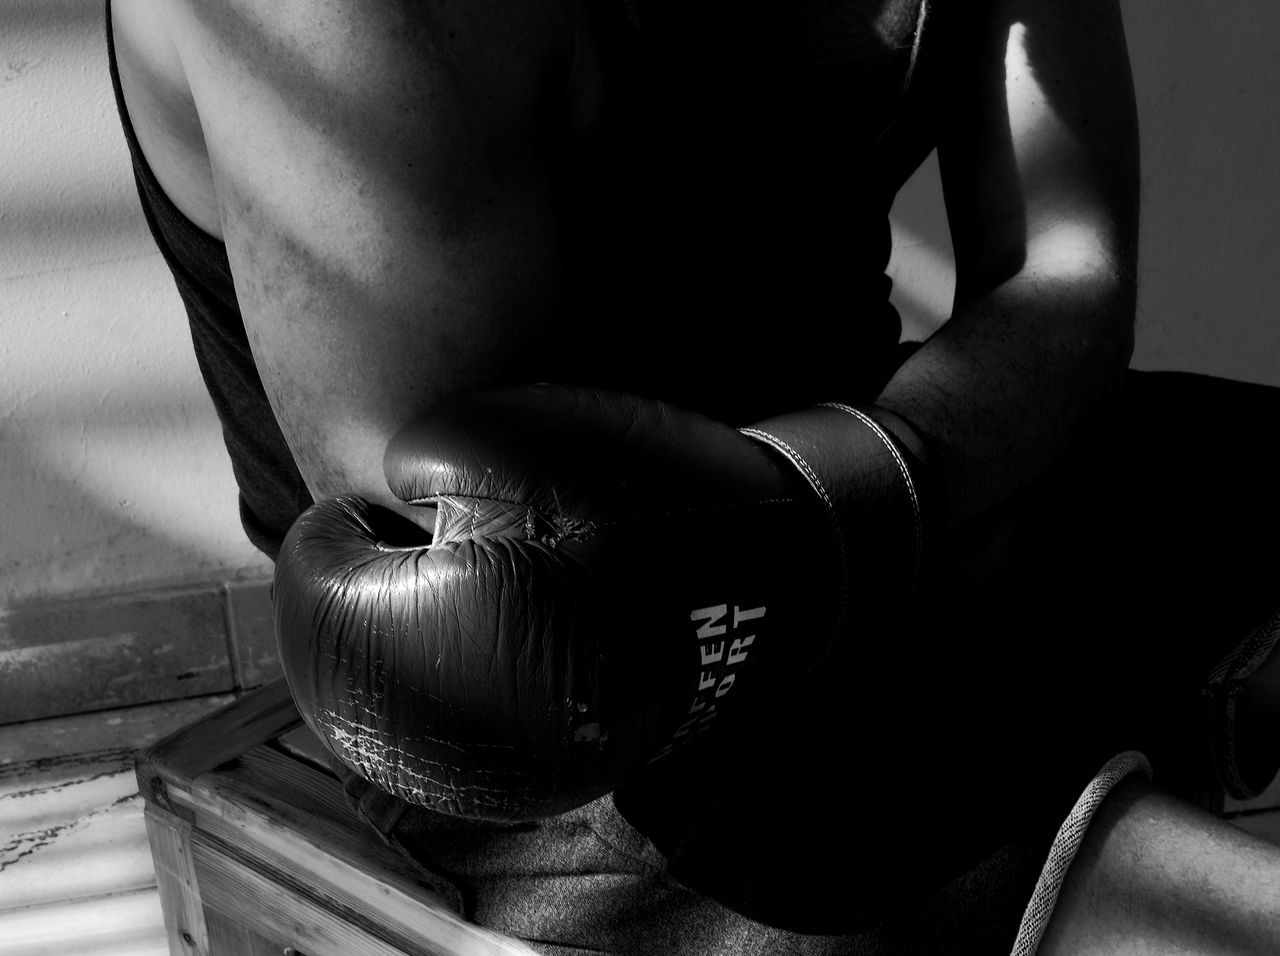 Adult Adults Only Black And White Box Sport Boxing Boxing Gloves Close-up Day Exercise For The Day... High Contrast High Contrast Bnw Human Body Part Human Hand Indoors  Leisure Activity Lifestyles Light And Shadow Low Key Low Key Photography One Person People Real People Sports Training